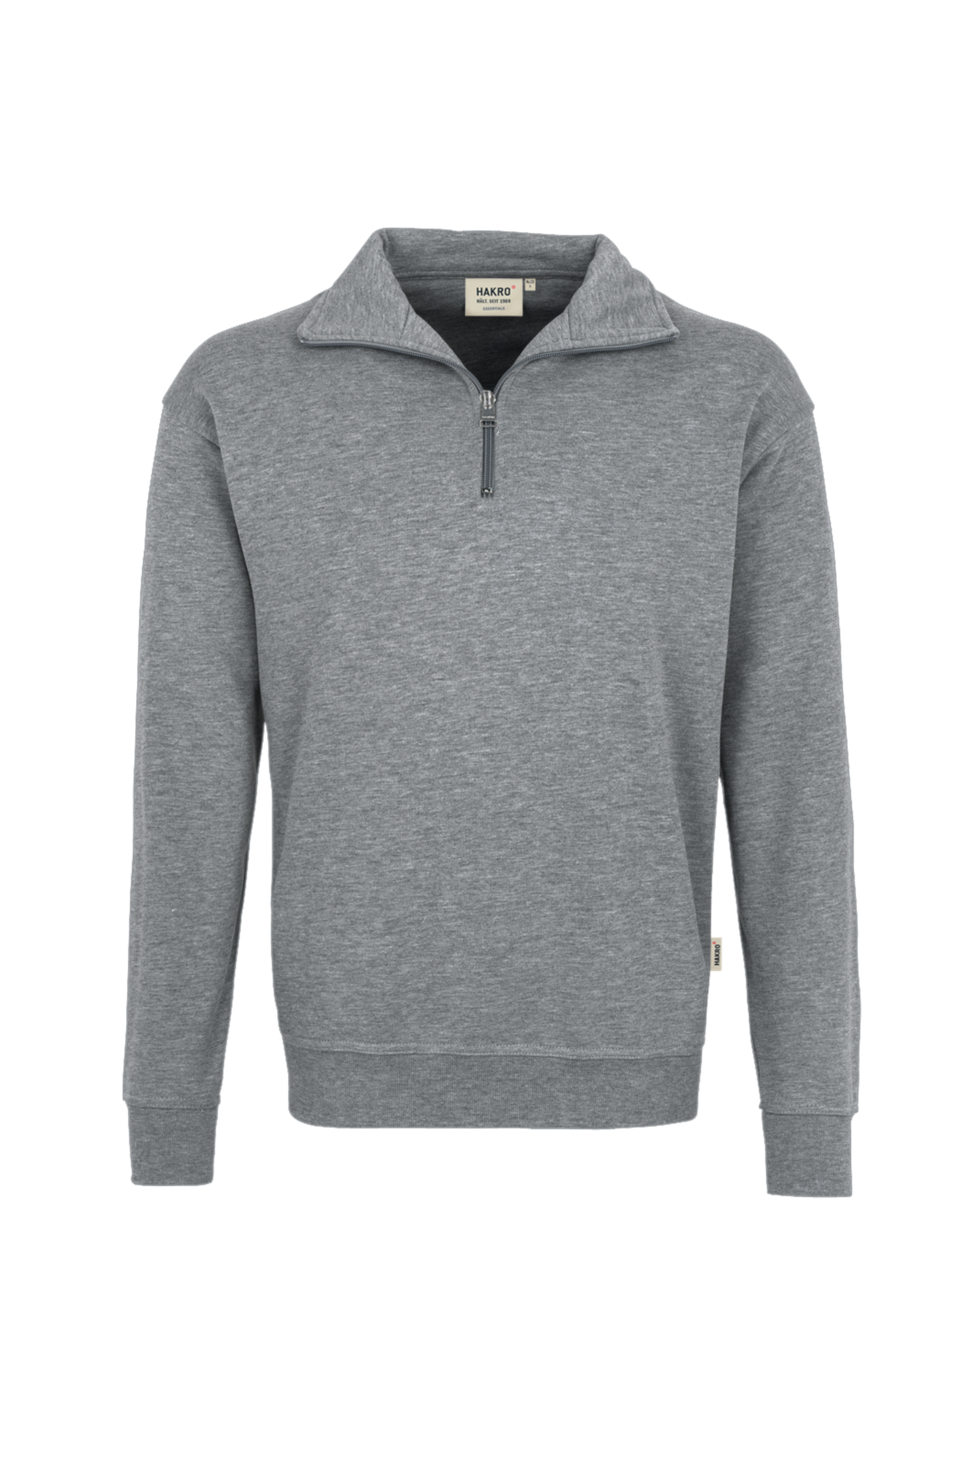 No451 - Zip-Sweatshirt Premium